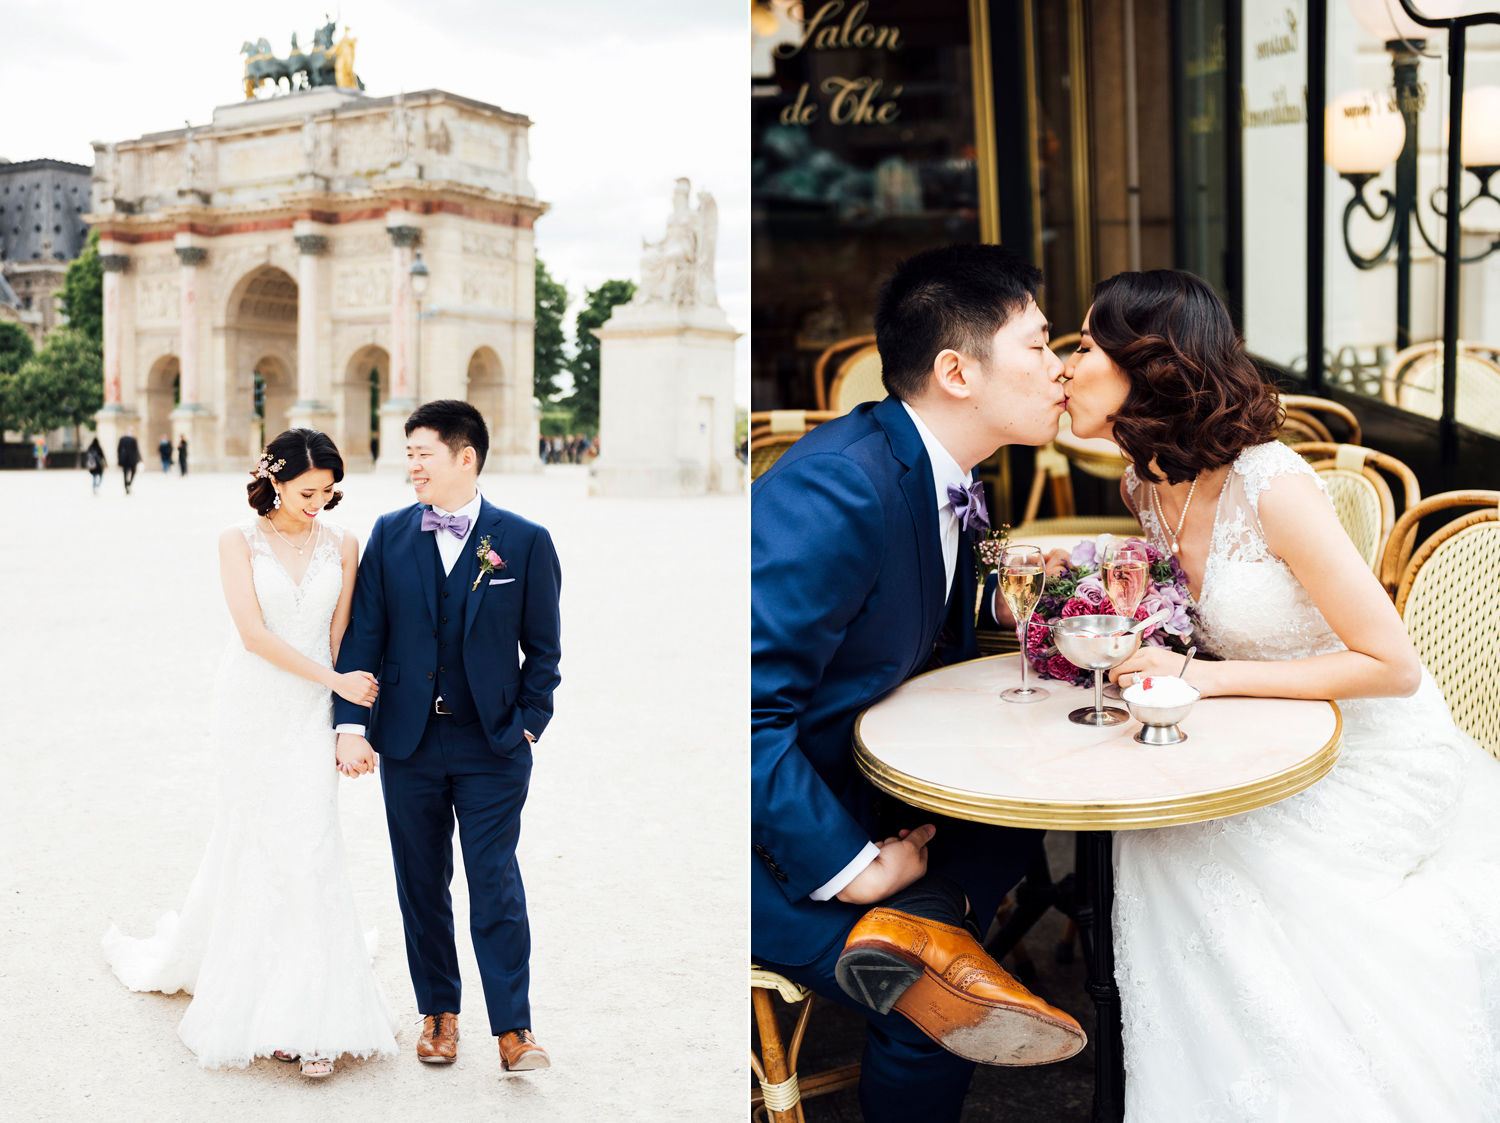 316-katie-mitchell-paris-wedding-elopement-photographer-france.jpg